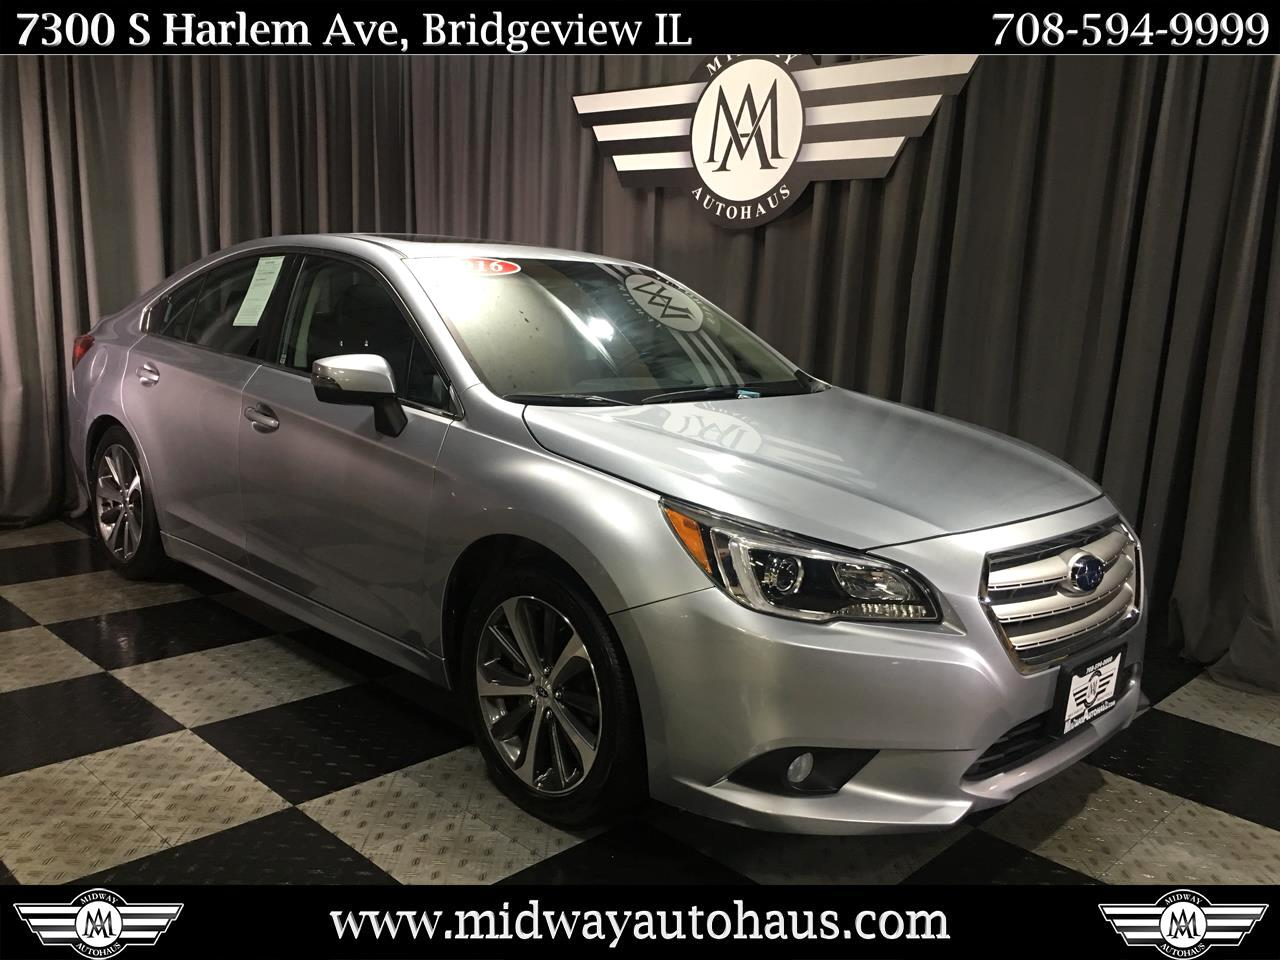 Pre-Owned 2016 Subaru Legacy 4dr Sdn 2.5i Limited PZEV